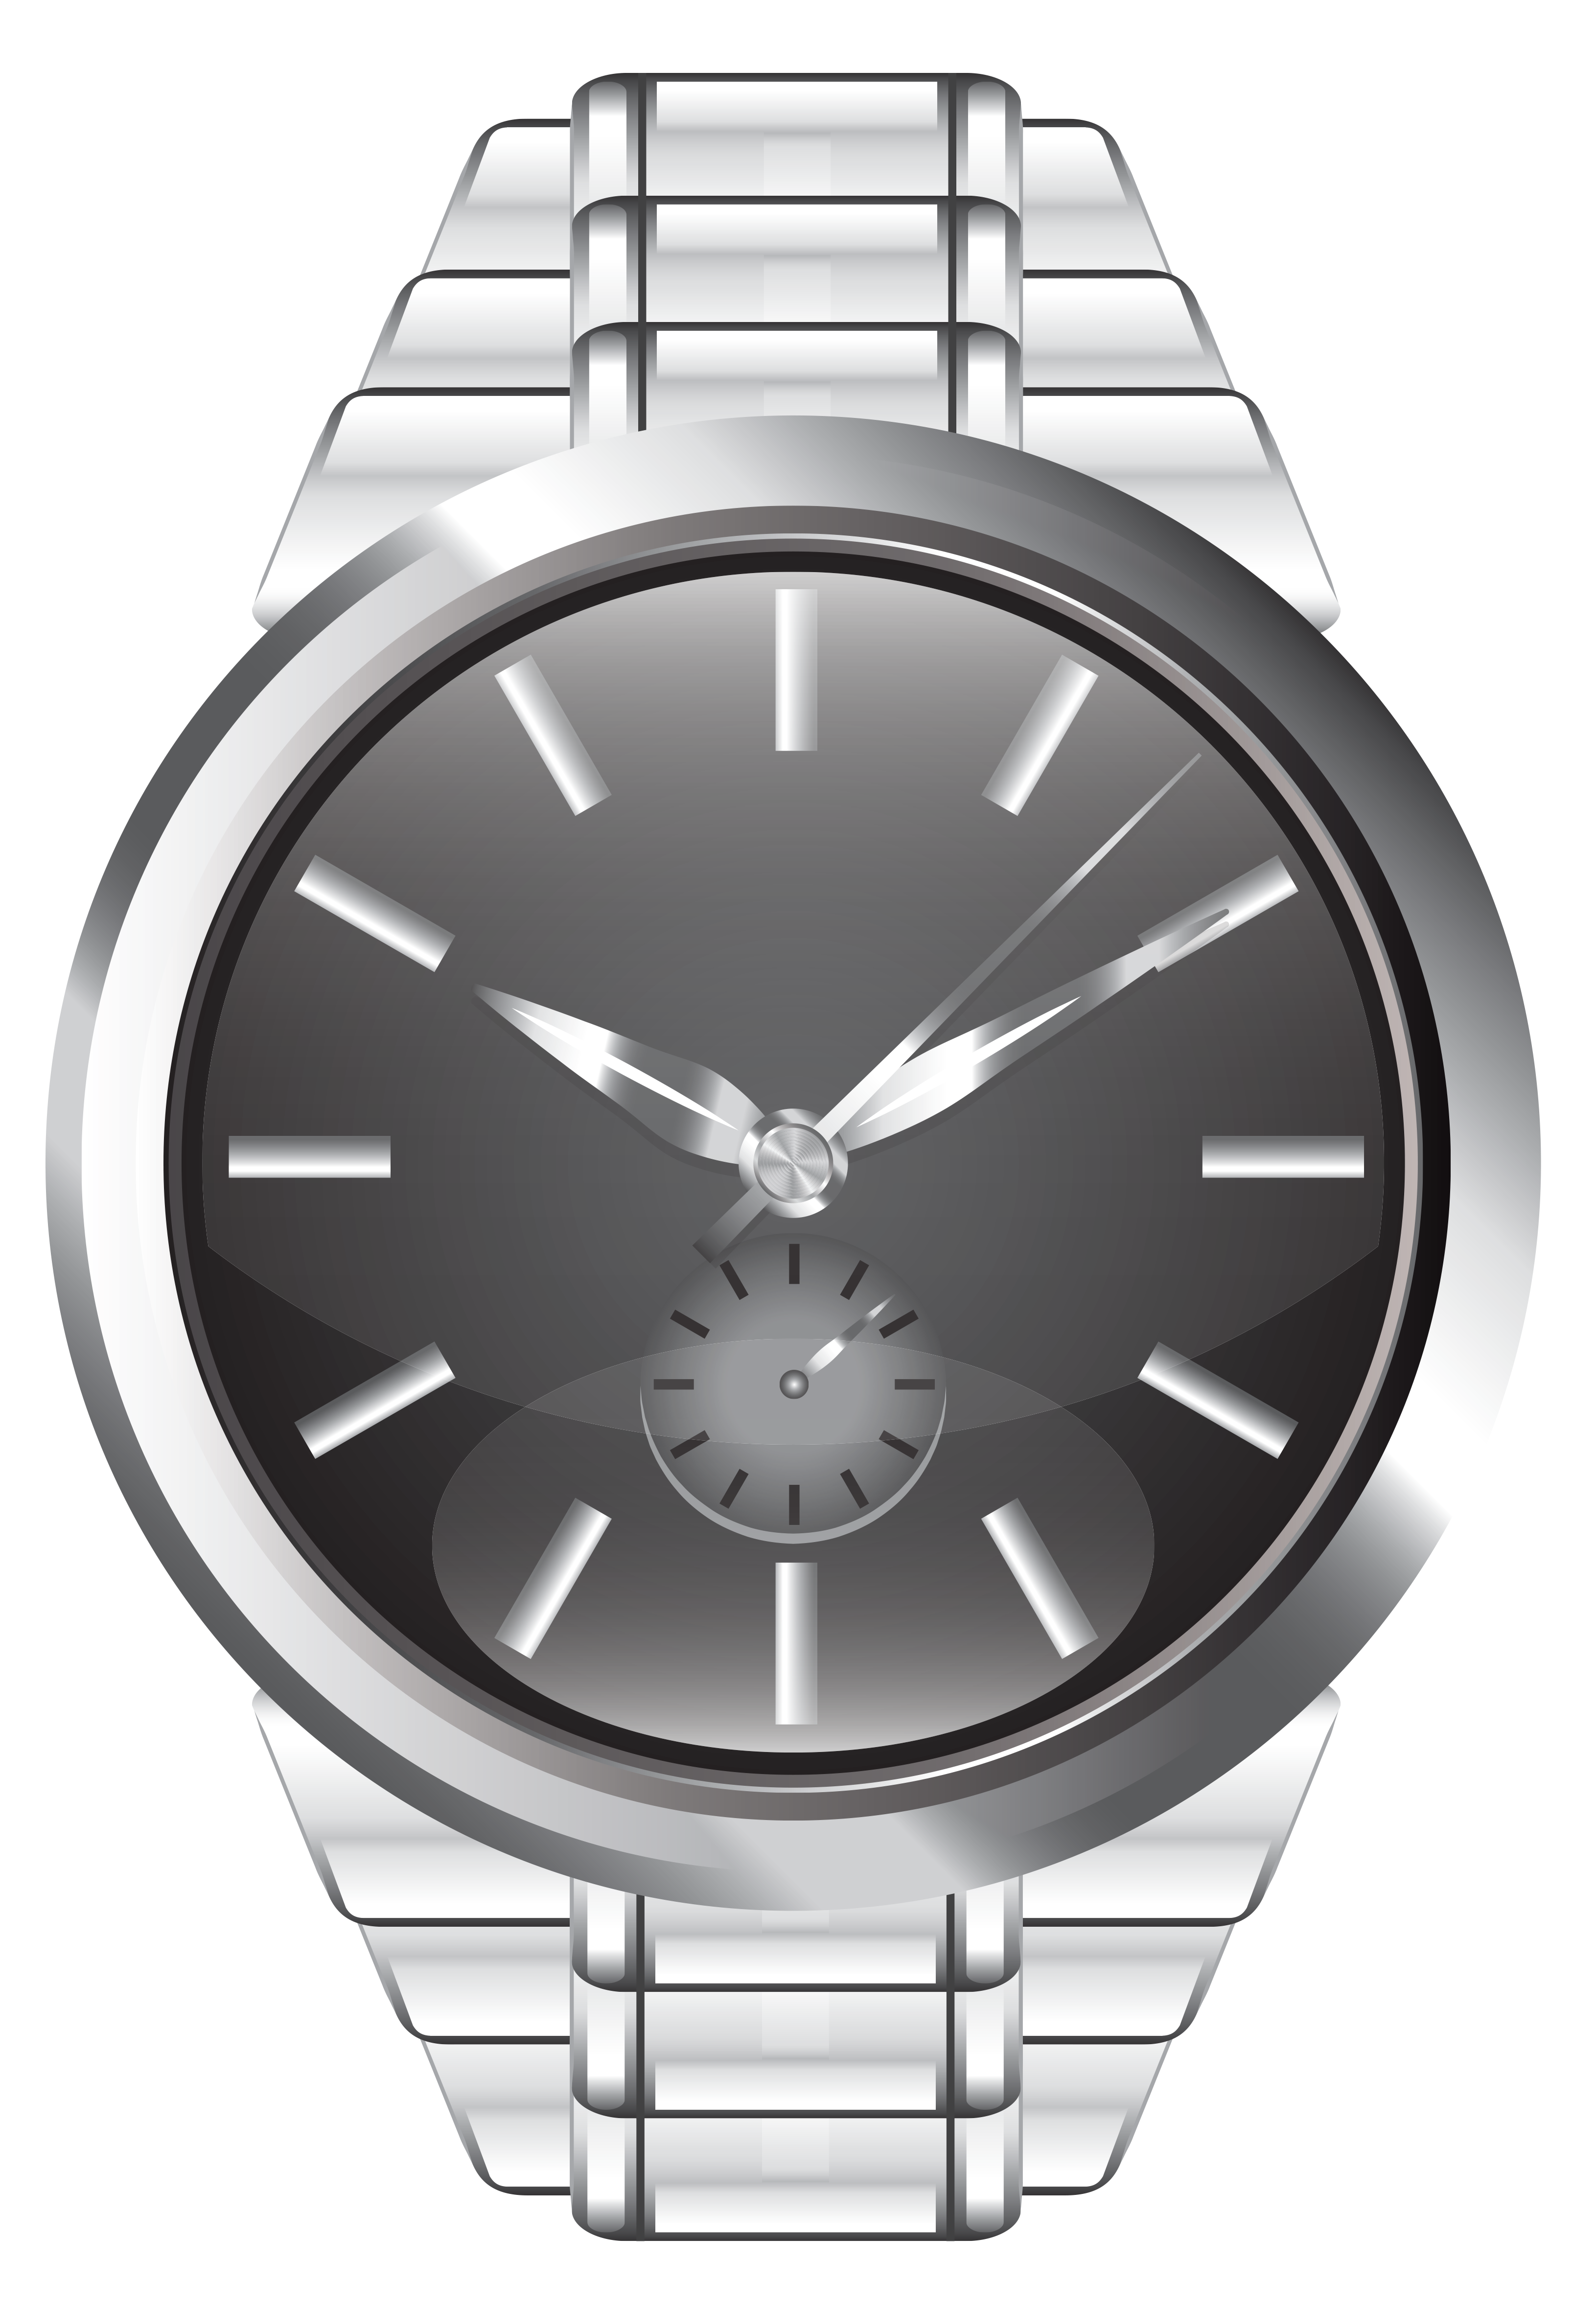 Watch PNG Images Digital Watch, Wall Clock, Smart Watches.